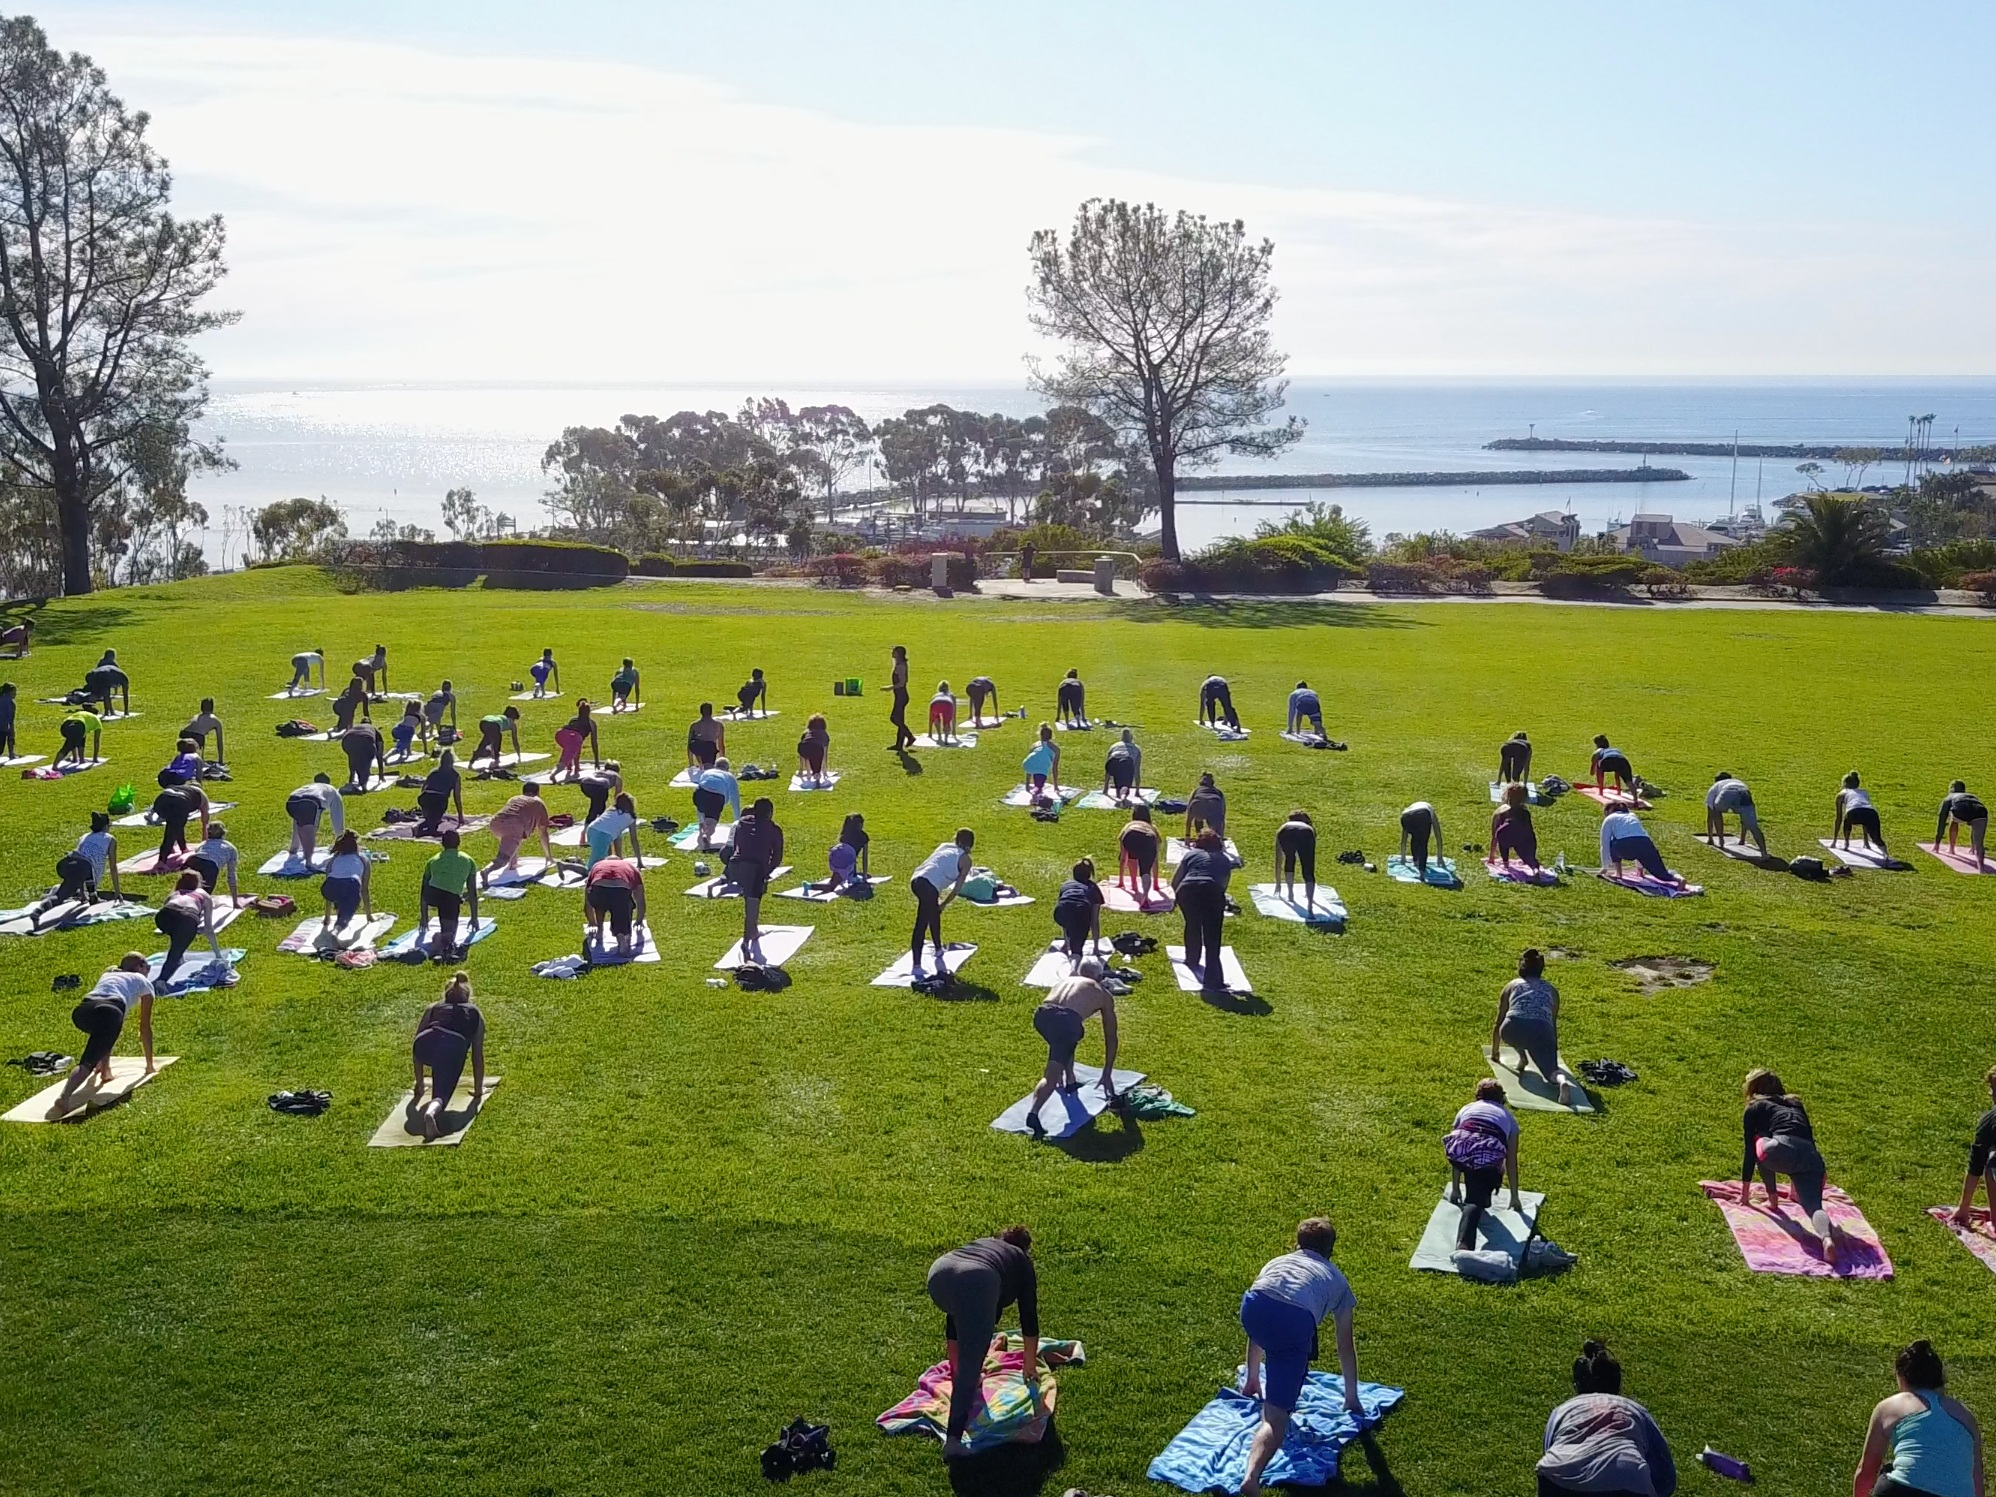 iHeartYoga in the Park -